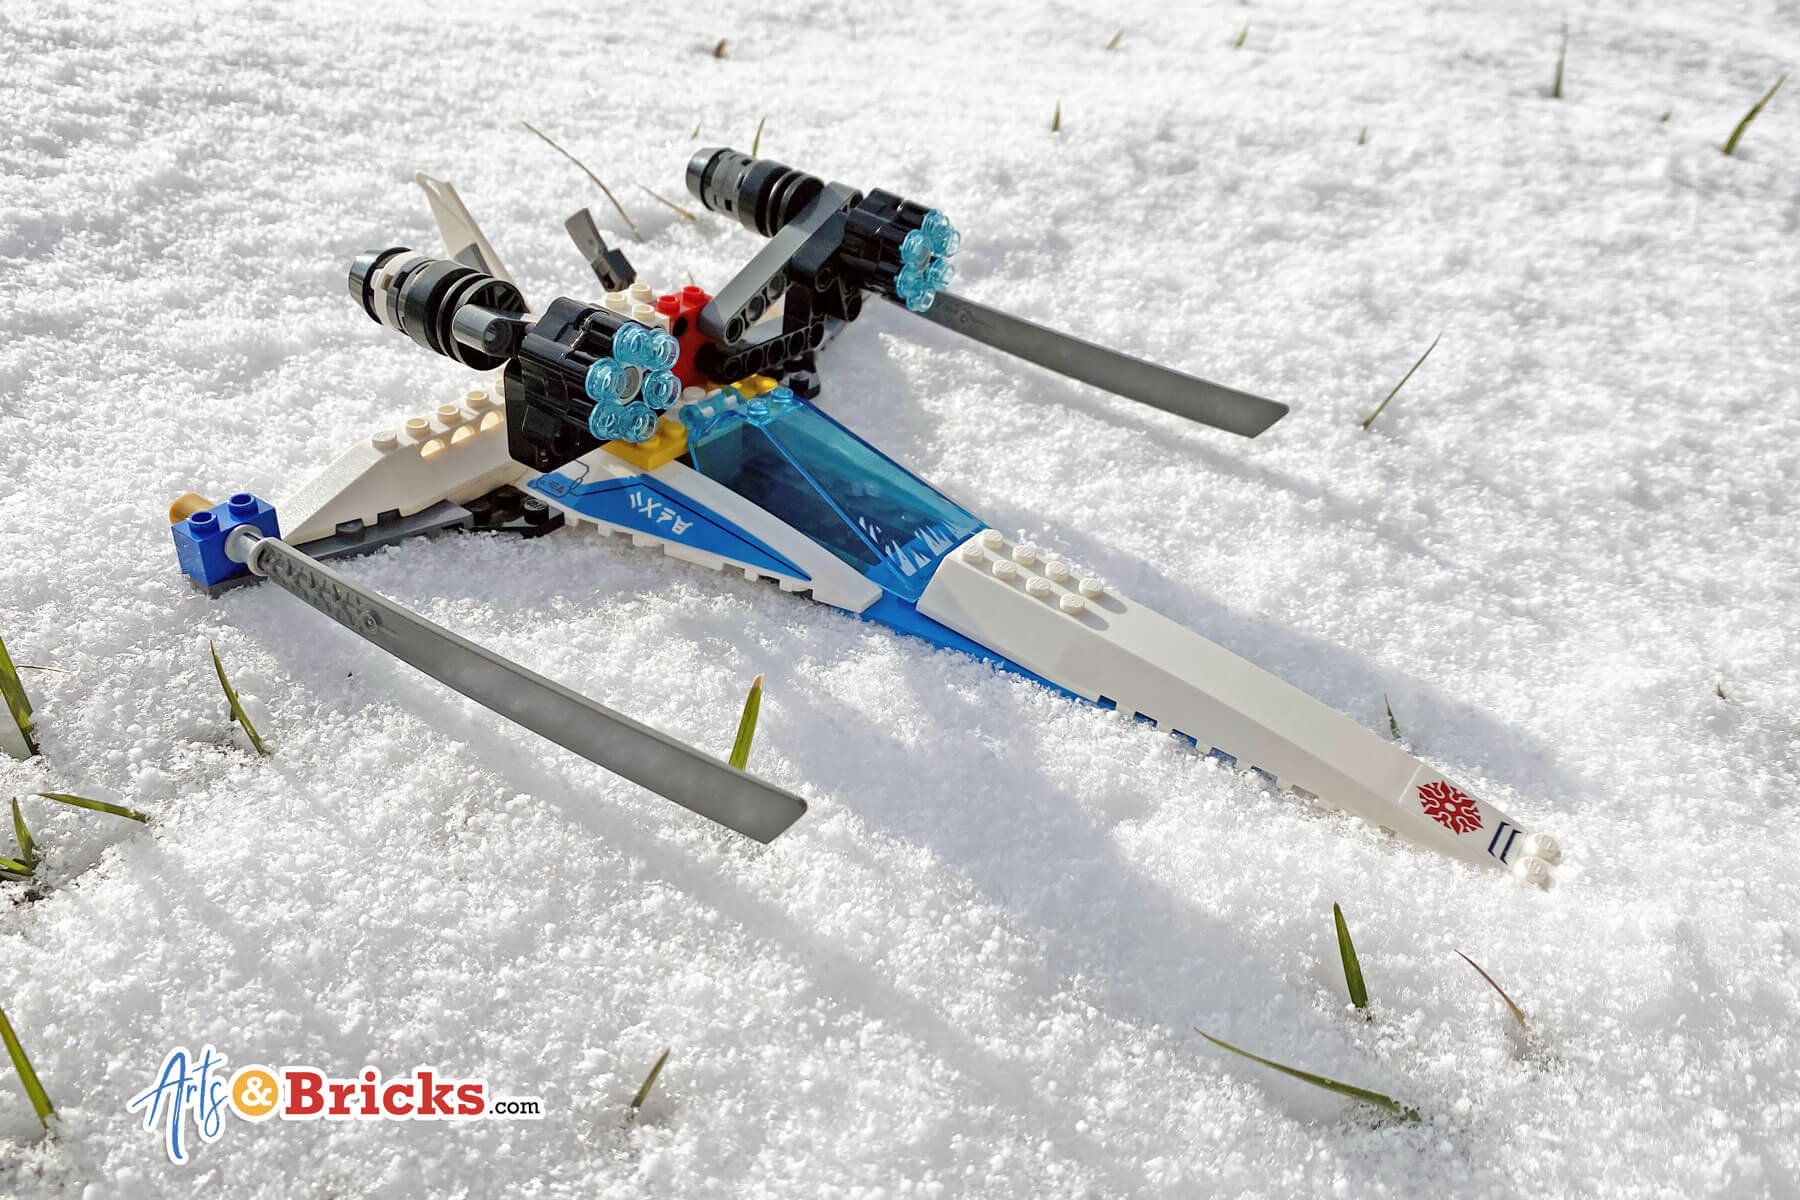 Lego Ninjago plane in the snow - lego alternate build example